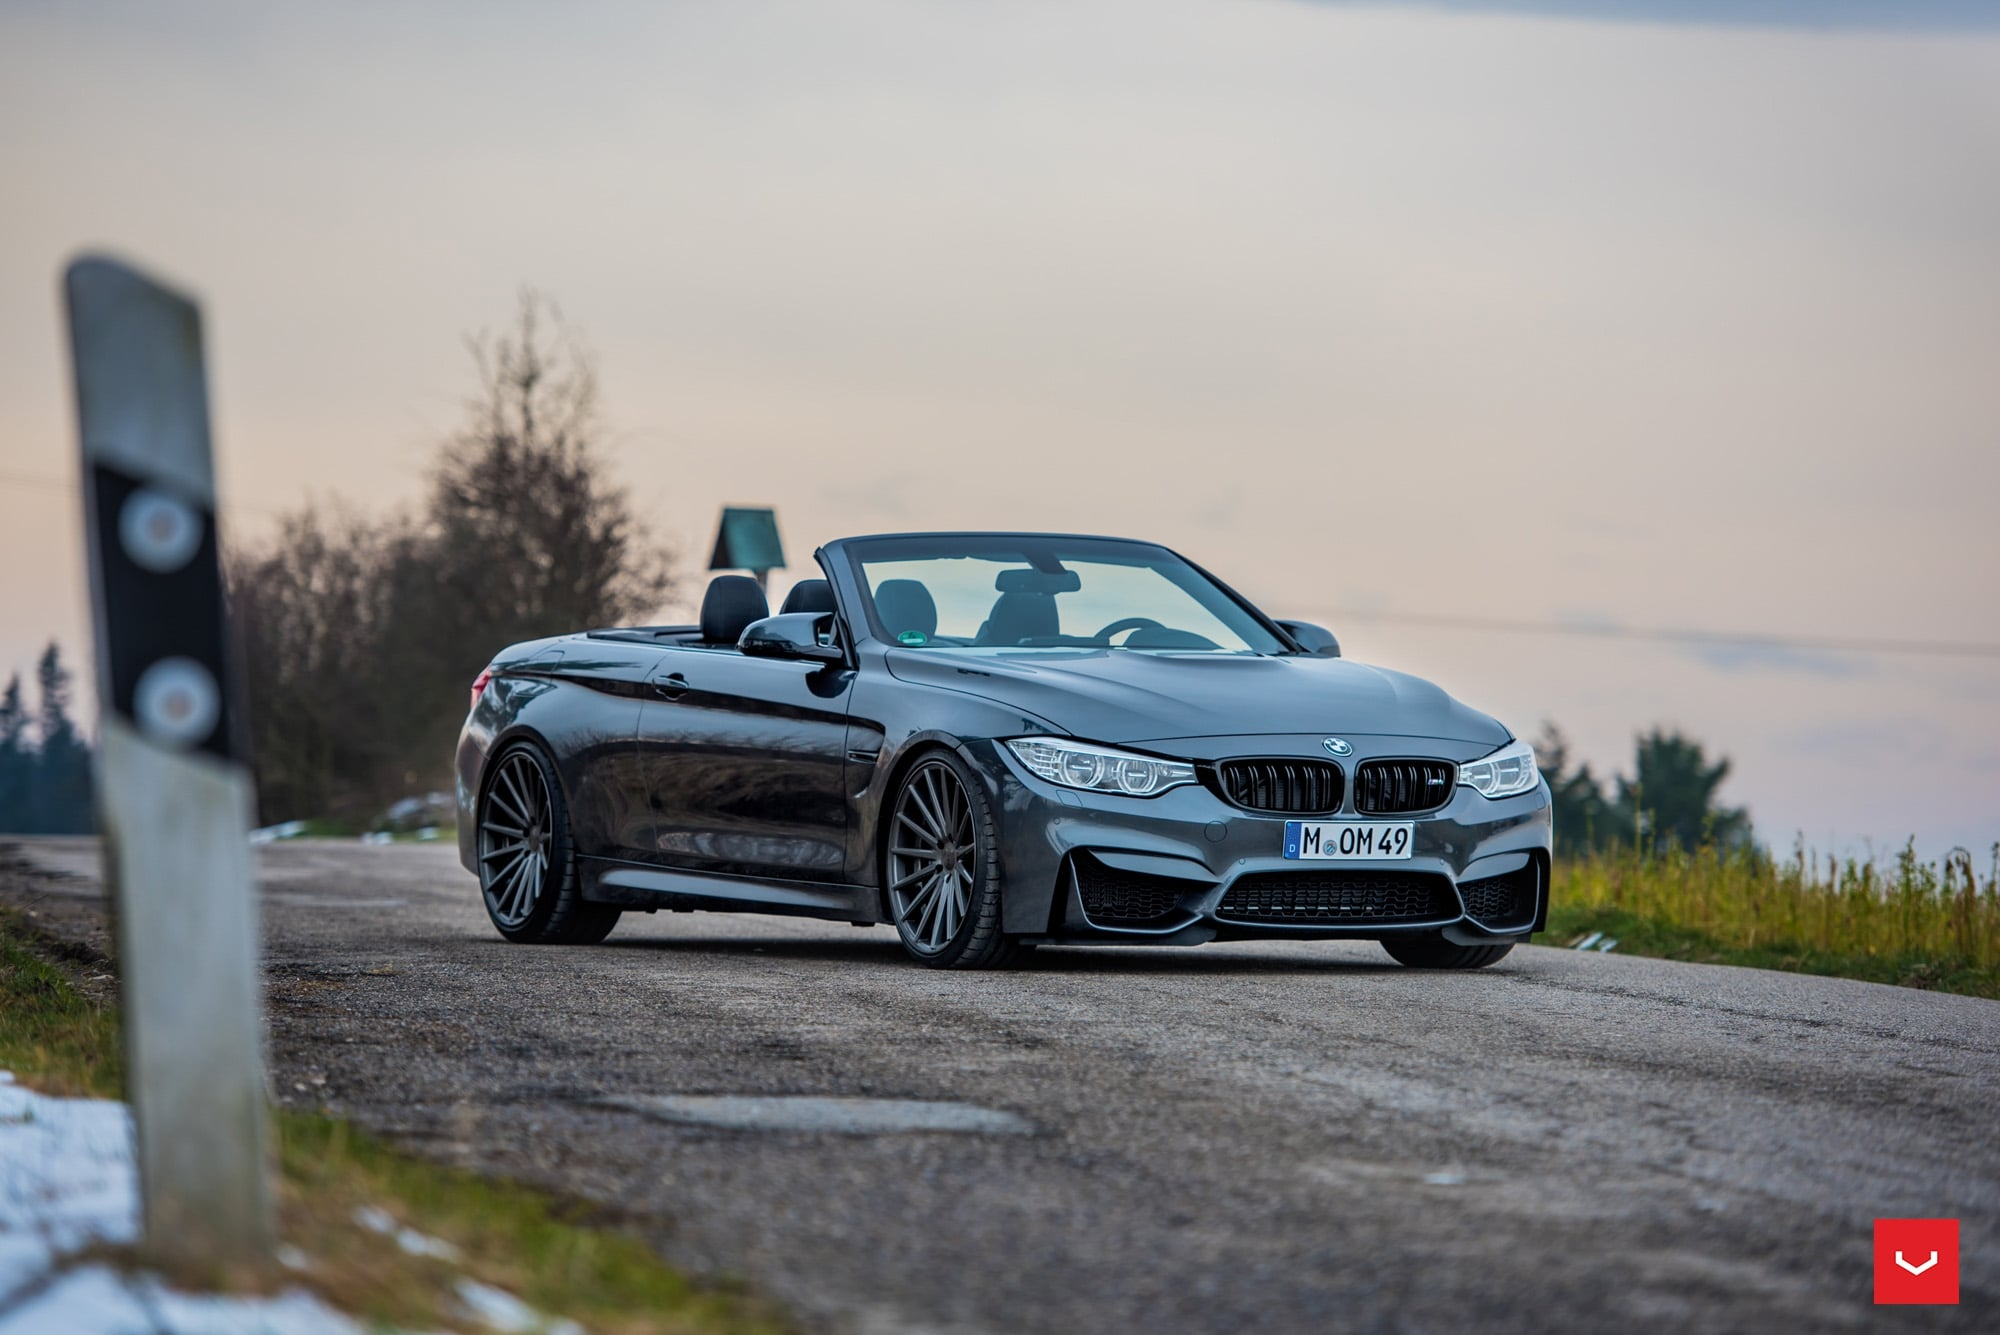 Bmw Blue Cars Wallpapers 2016 Bmw M4 Convertible Wallpapers Hd Download